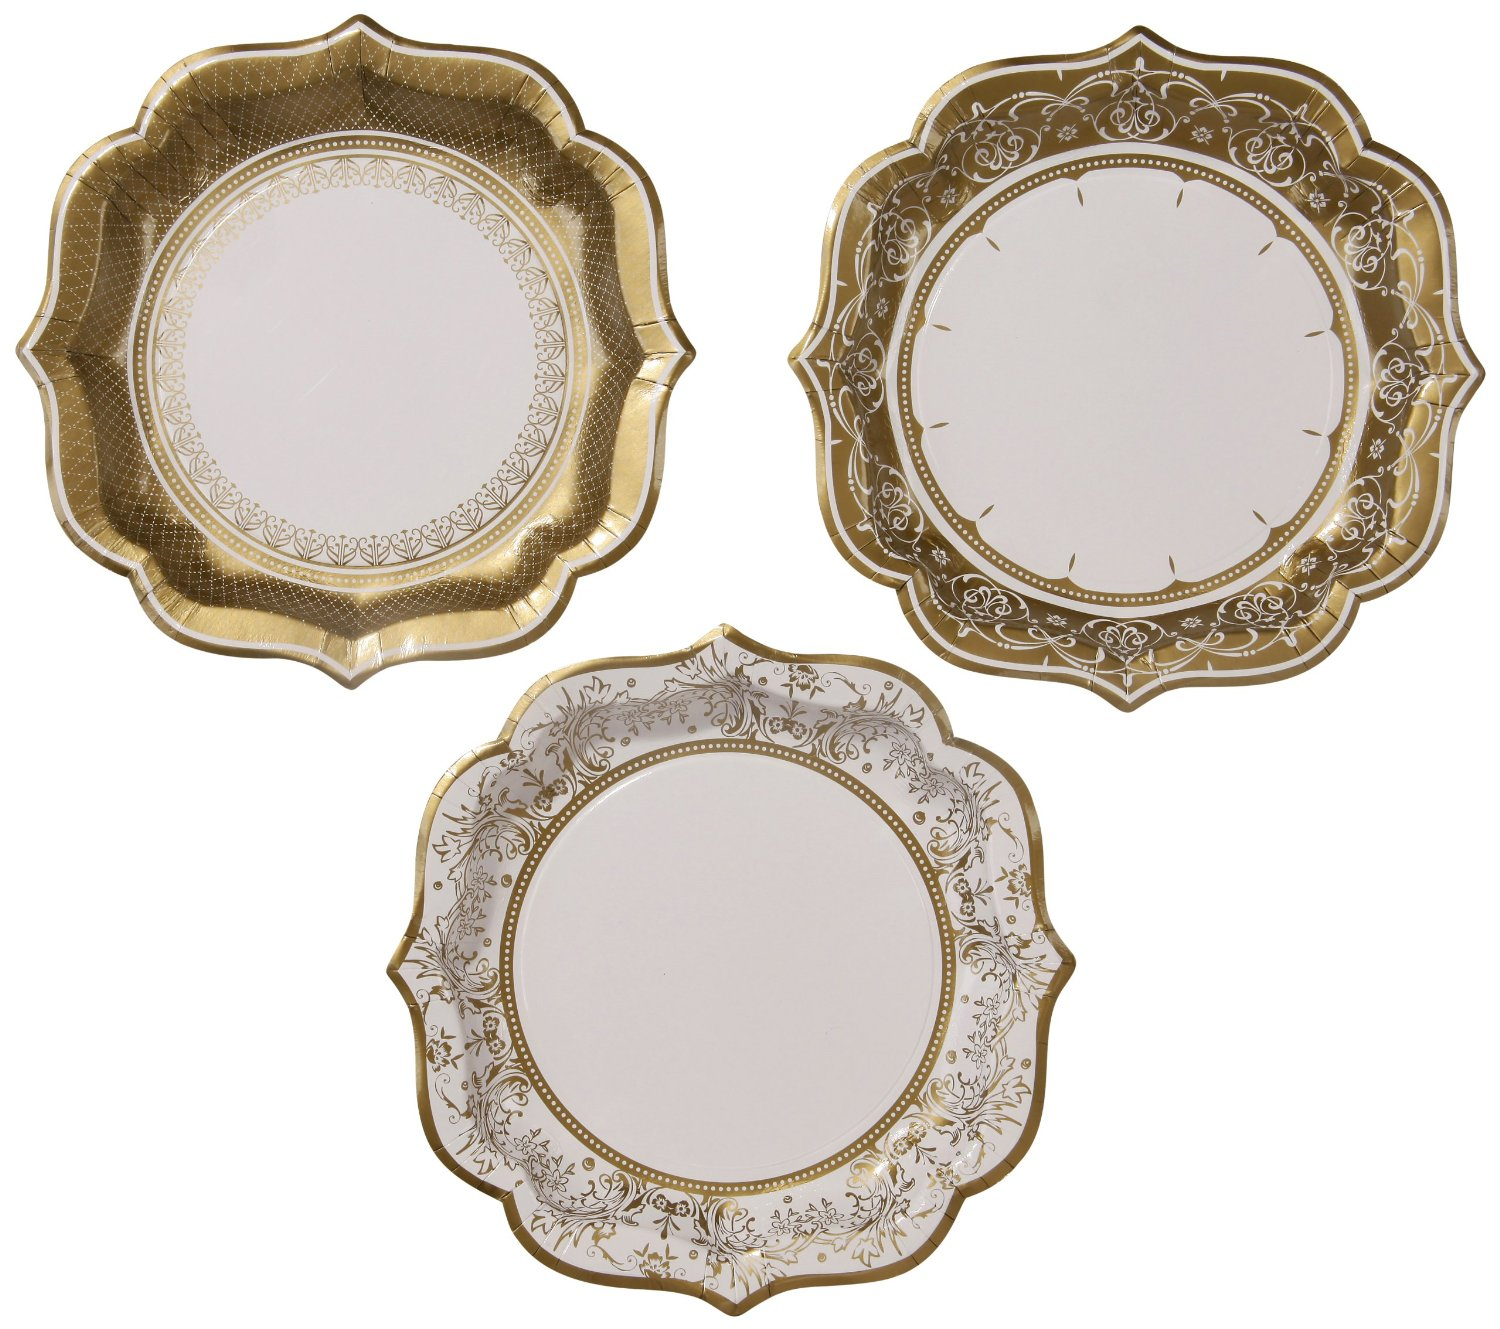 Talking Tables Gold Party Large Gold Party Plates for a Wedding or as Party Decorations Gold (12 Pack) Medium - Walmart.com  sc 1 st  Walmart : large disposable plates - pezcame.com